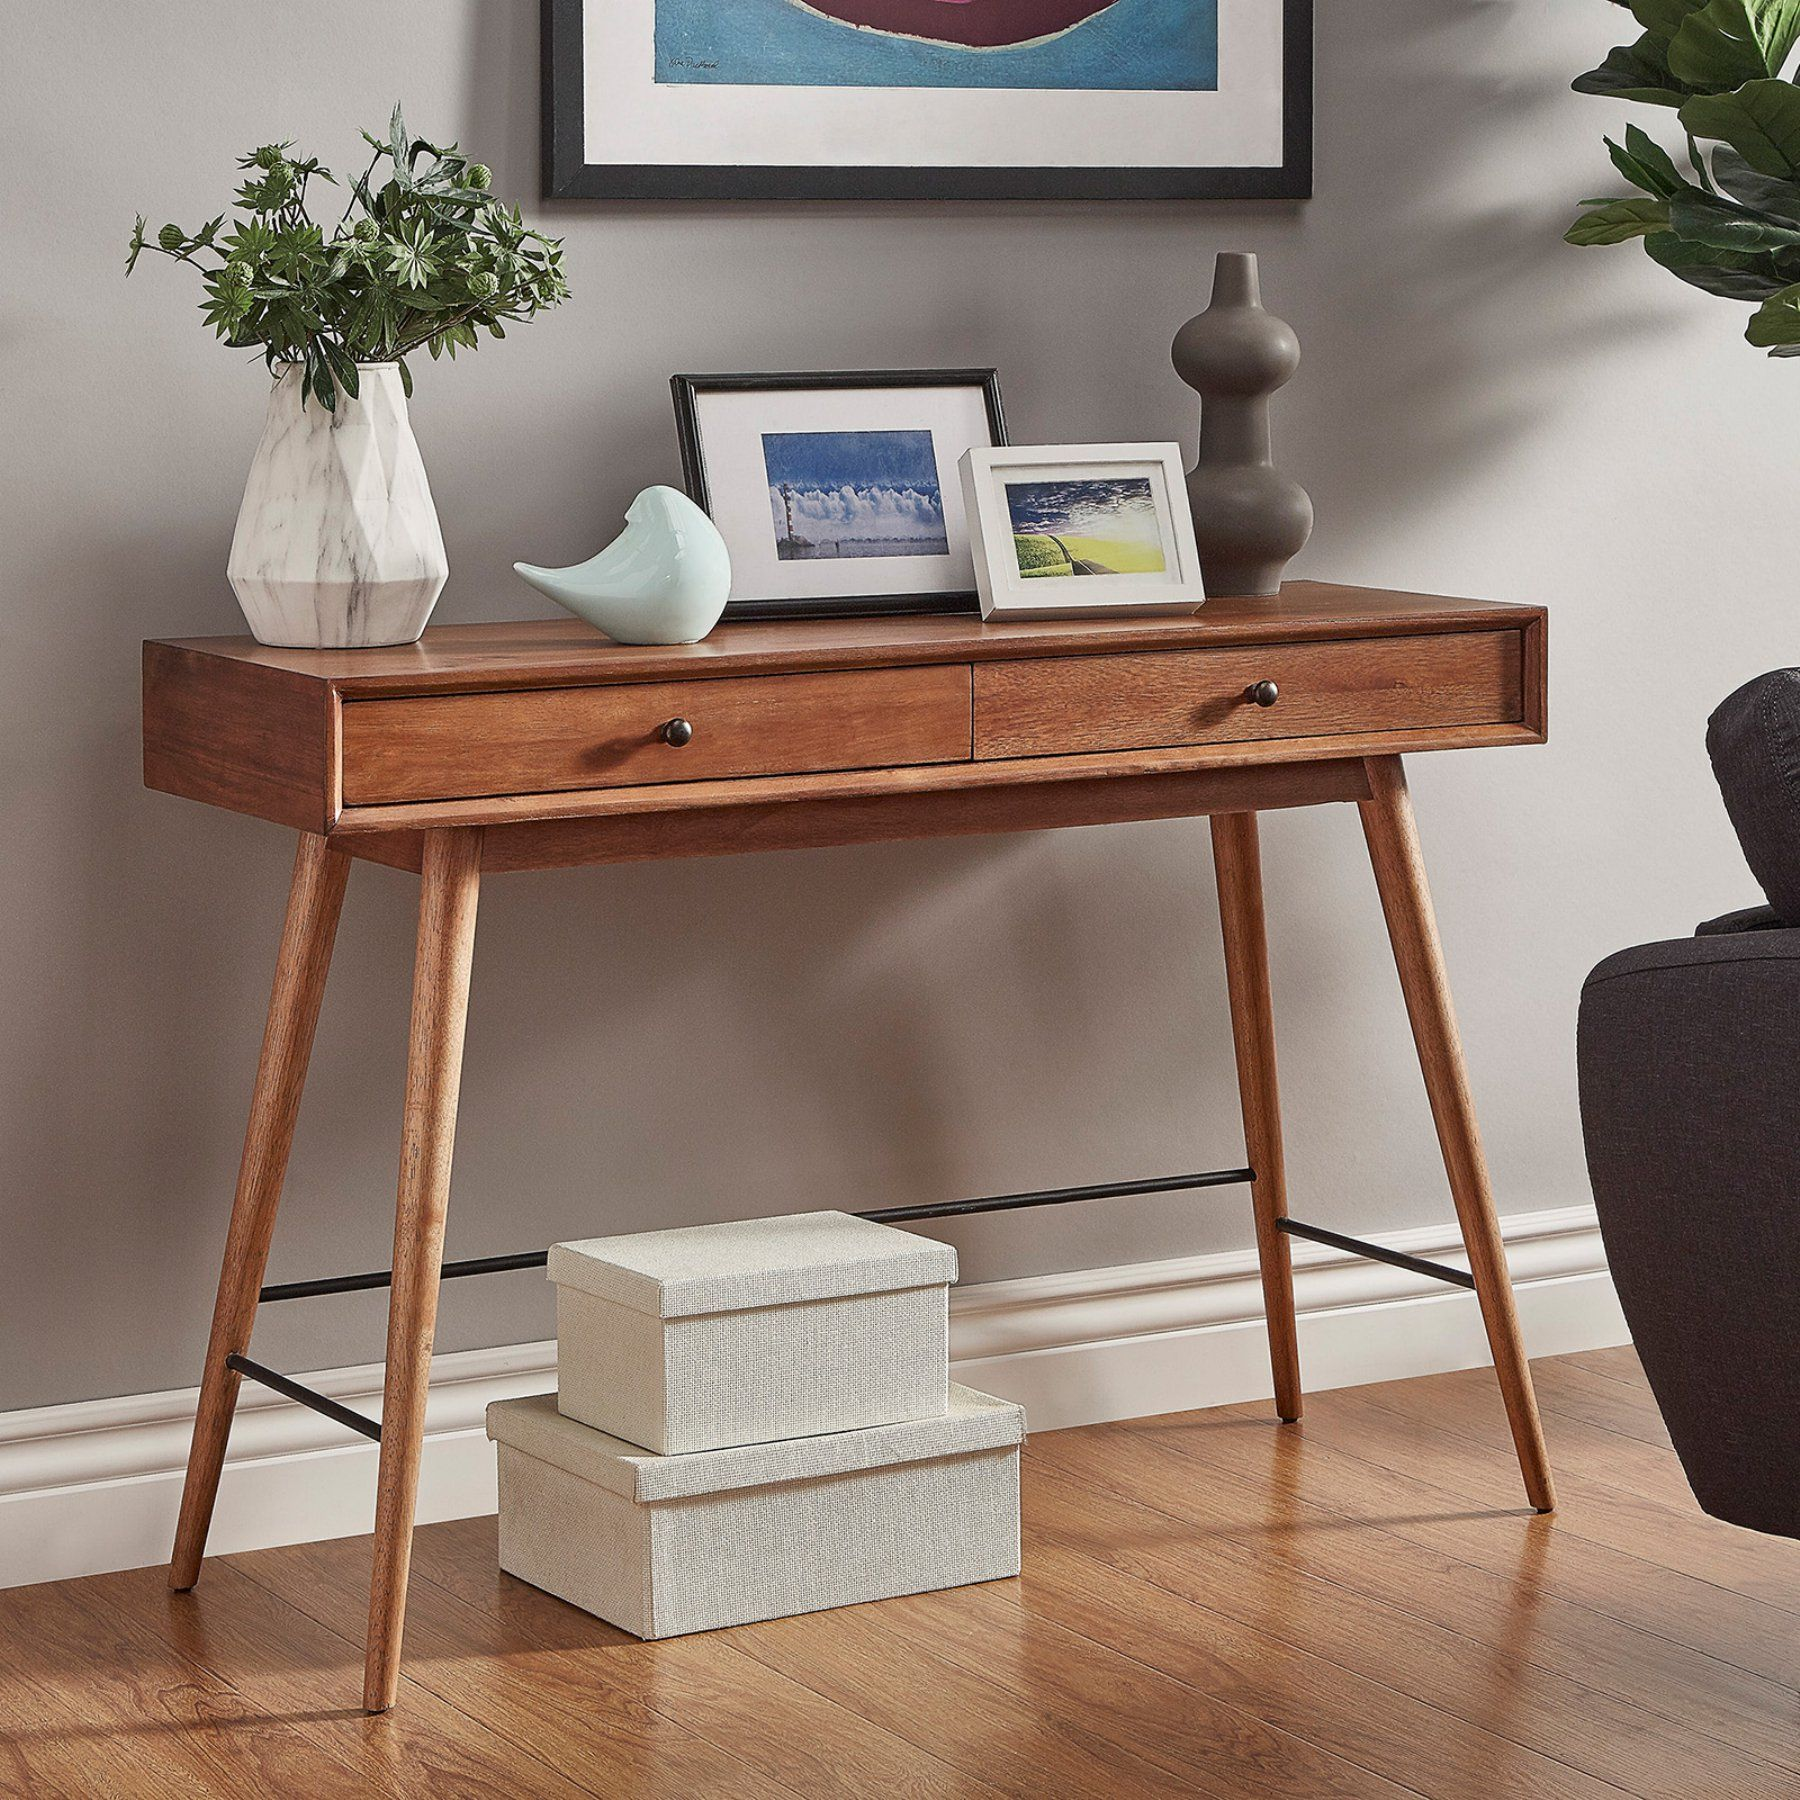 Weston Home Alcott Sofa Table  68579Br 05(3A)